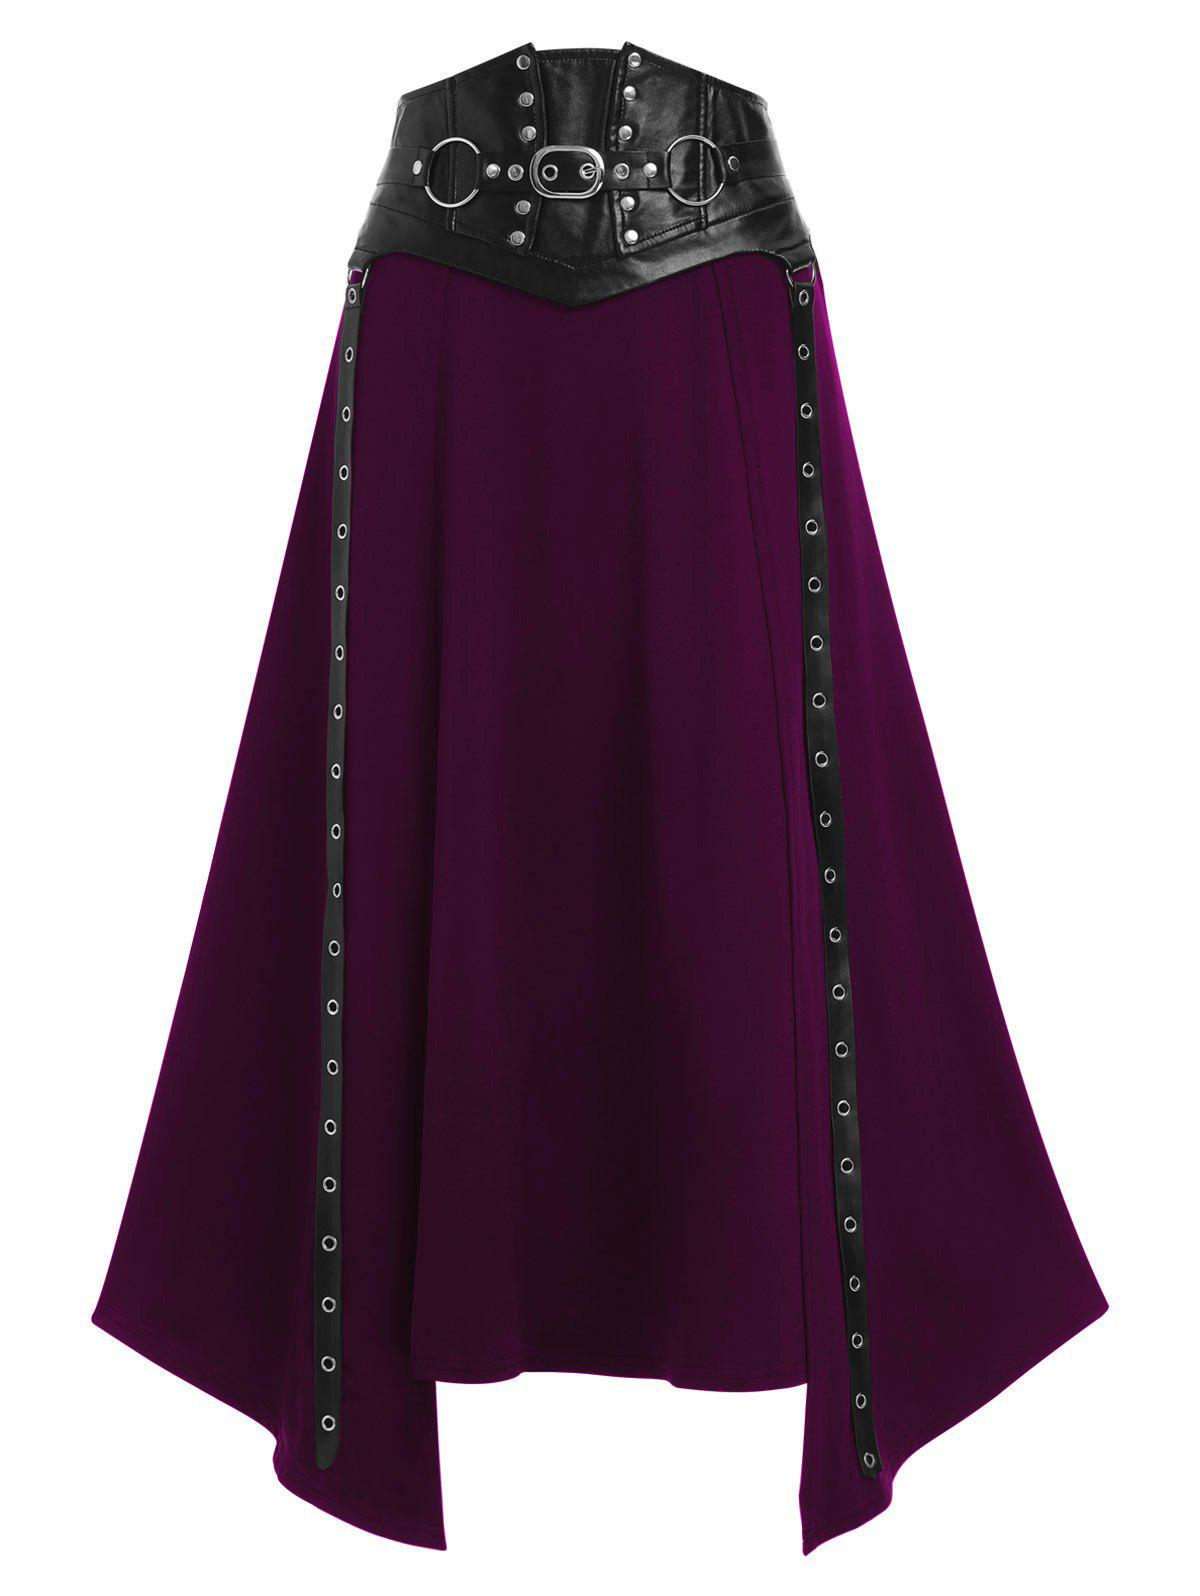 Hot Faux Leather Buckle Strap Rivet Embellished Lace-up Asymmetric Gothic Skirt